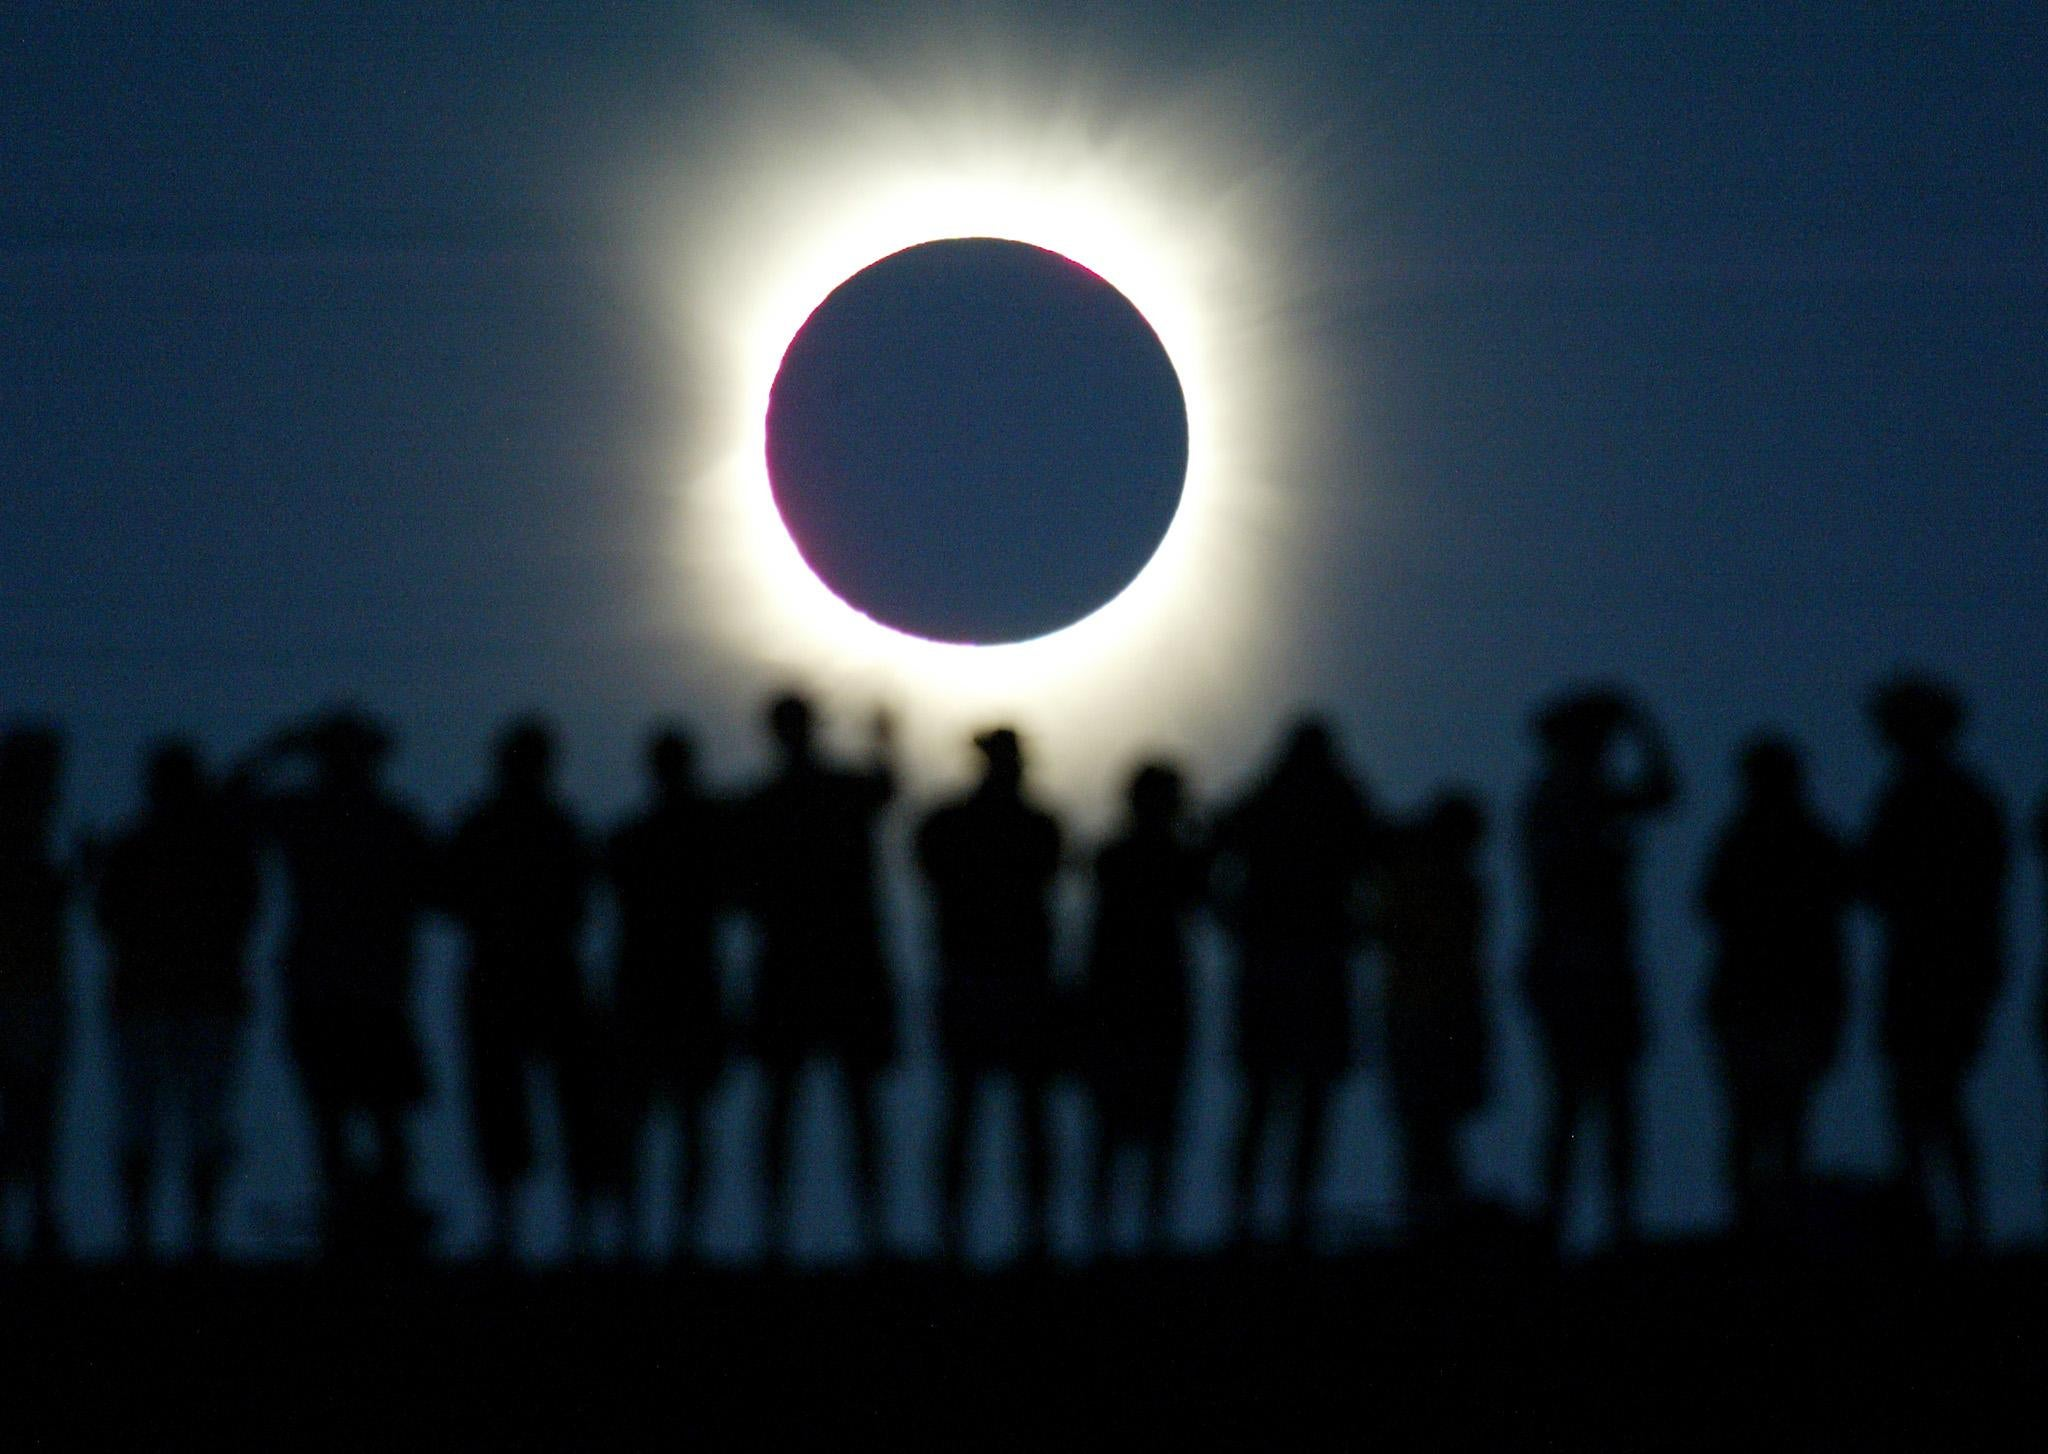 Nasa Confirms Six Days of Darkness in December': No, they